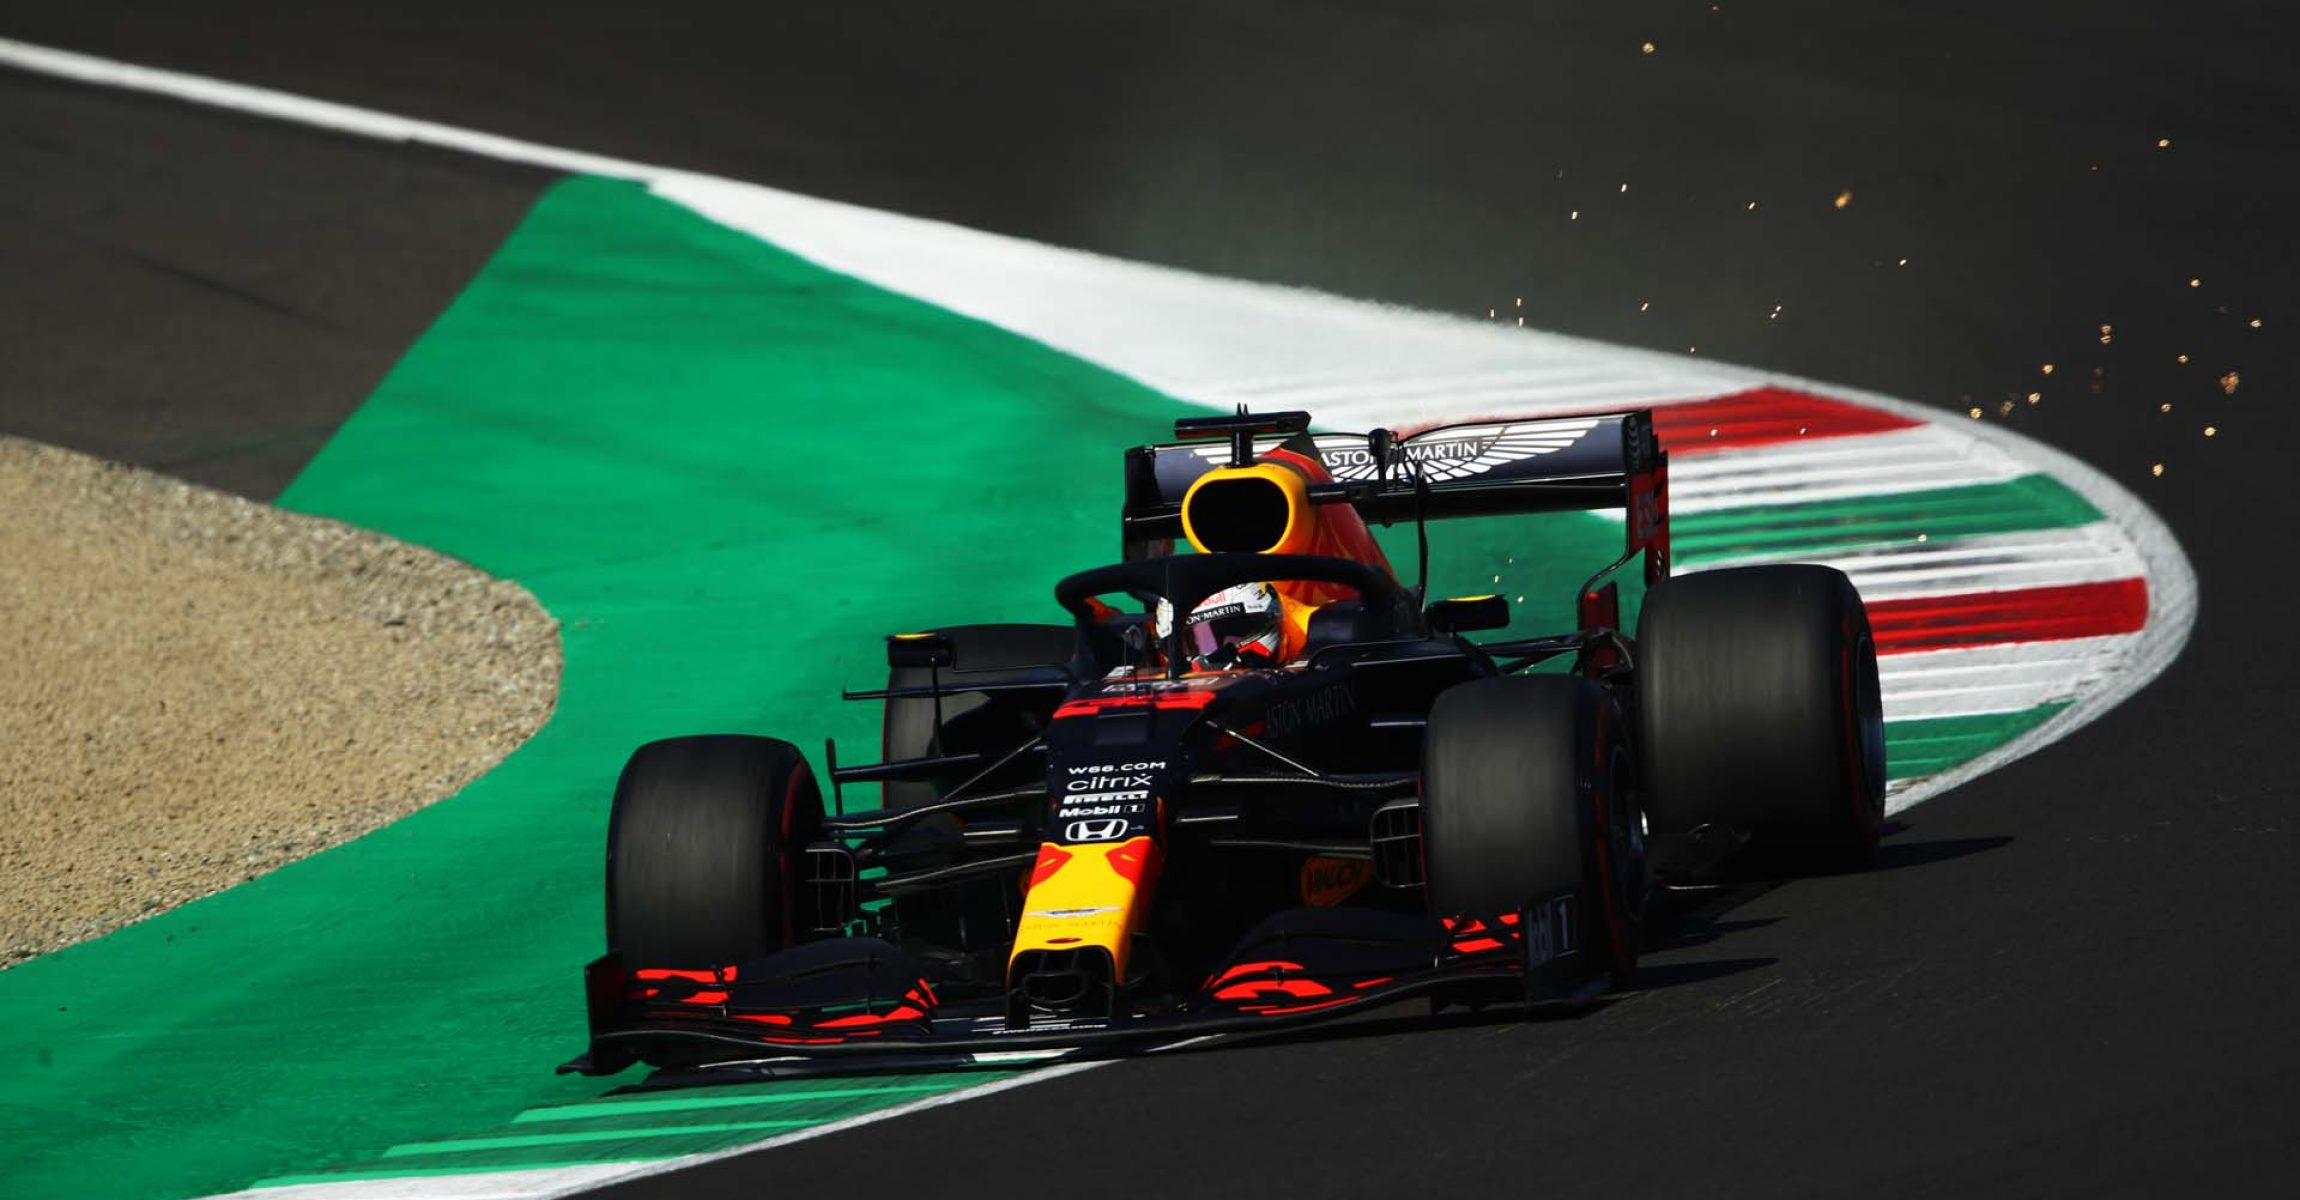 SCARPERIA, ITALY - SEPTEMBER 12: Max Verstappen of the Netherlands driving the (33) Aston Martin Red Bull Racing RB16 on track during qualifying for the F1 Grand Prix of Tuscany at Mugello Circuit on September 12, 2020 in Scarperia, Italy. (Photo by Bryn Lennon/Getty Images)